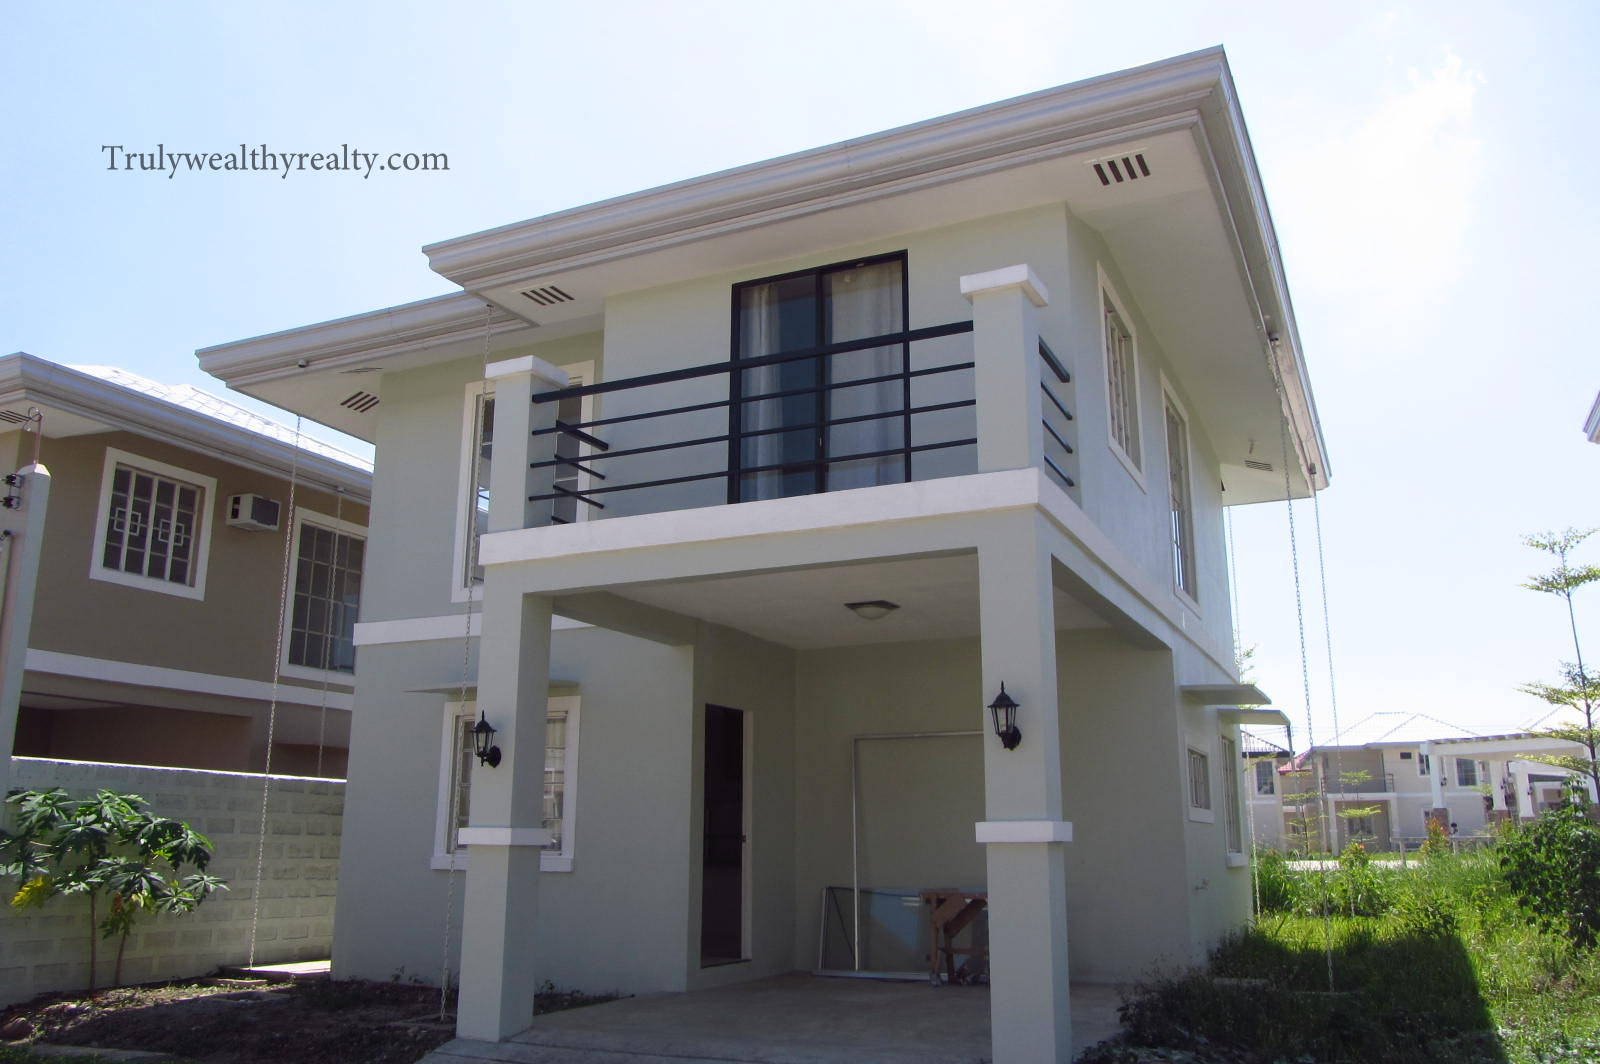 Ventura residences 4 bedroom house for rent truly for 4 bedroom homes for rent